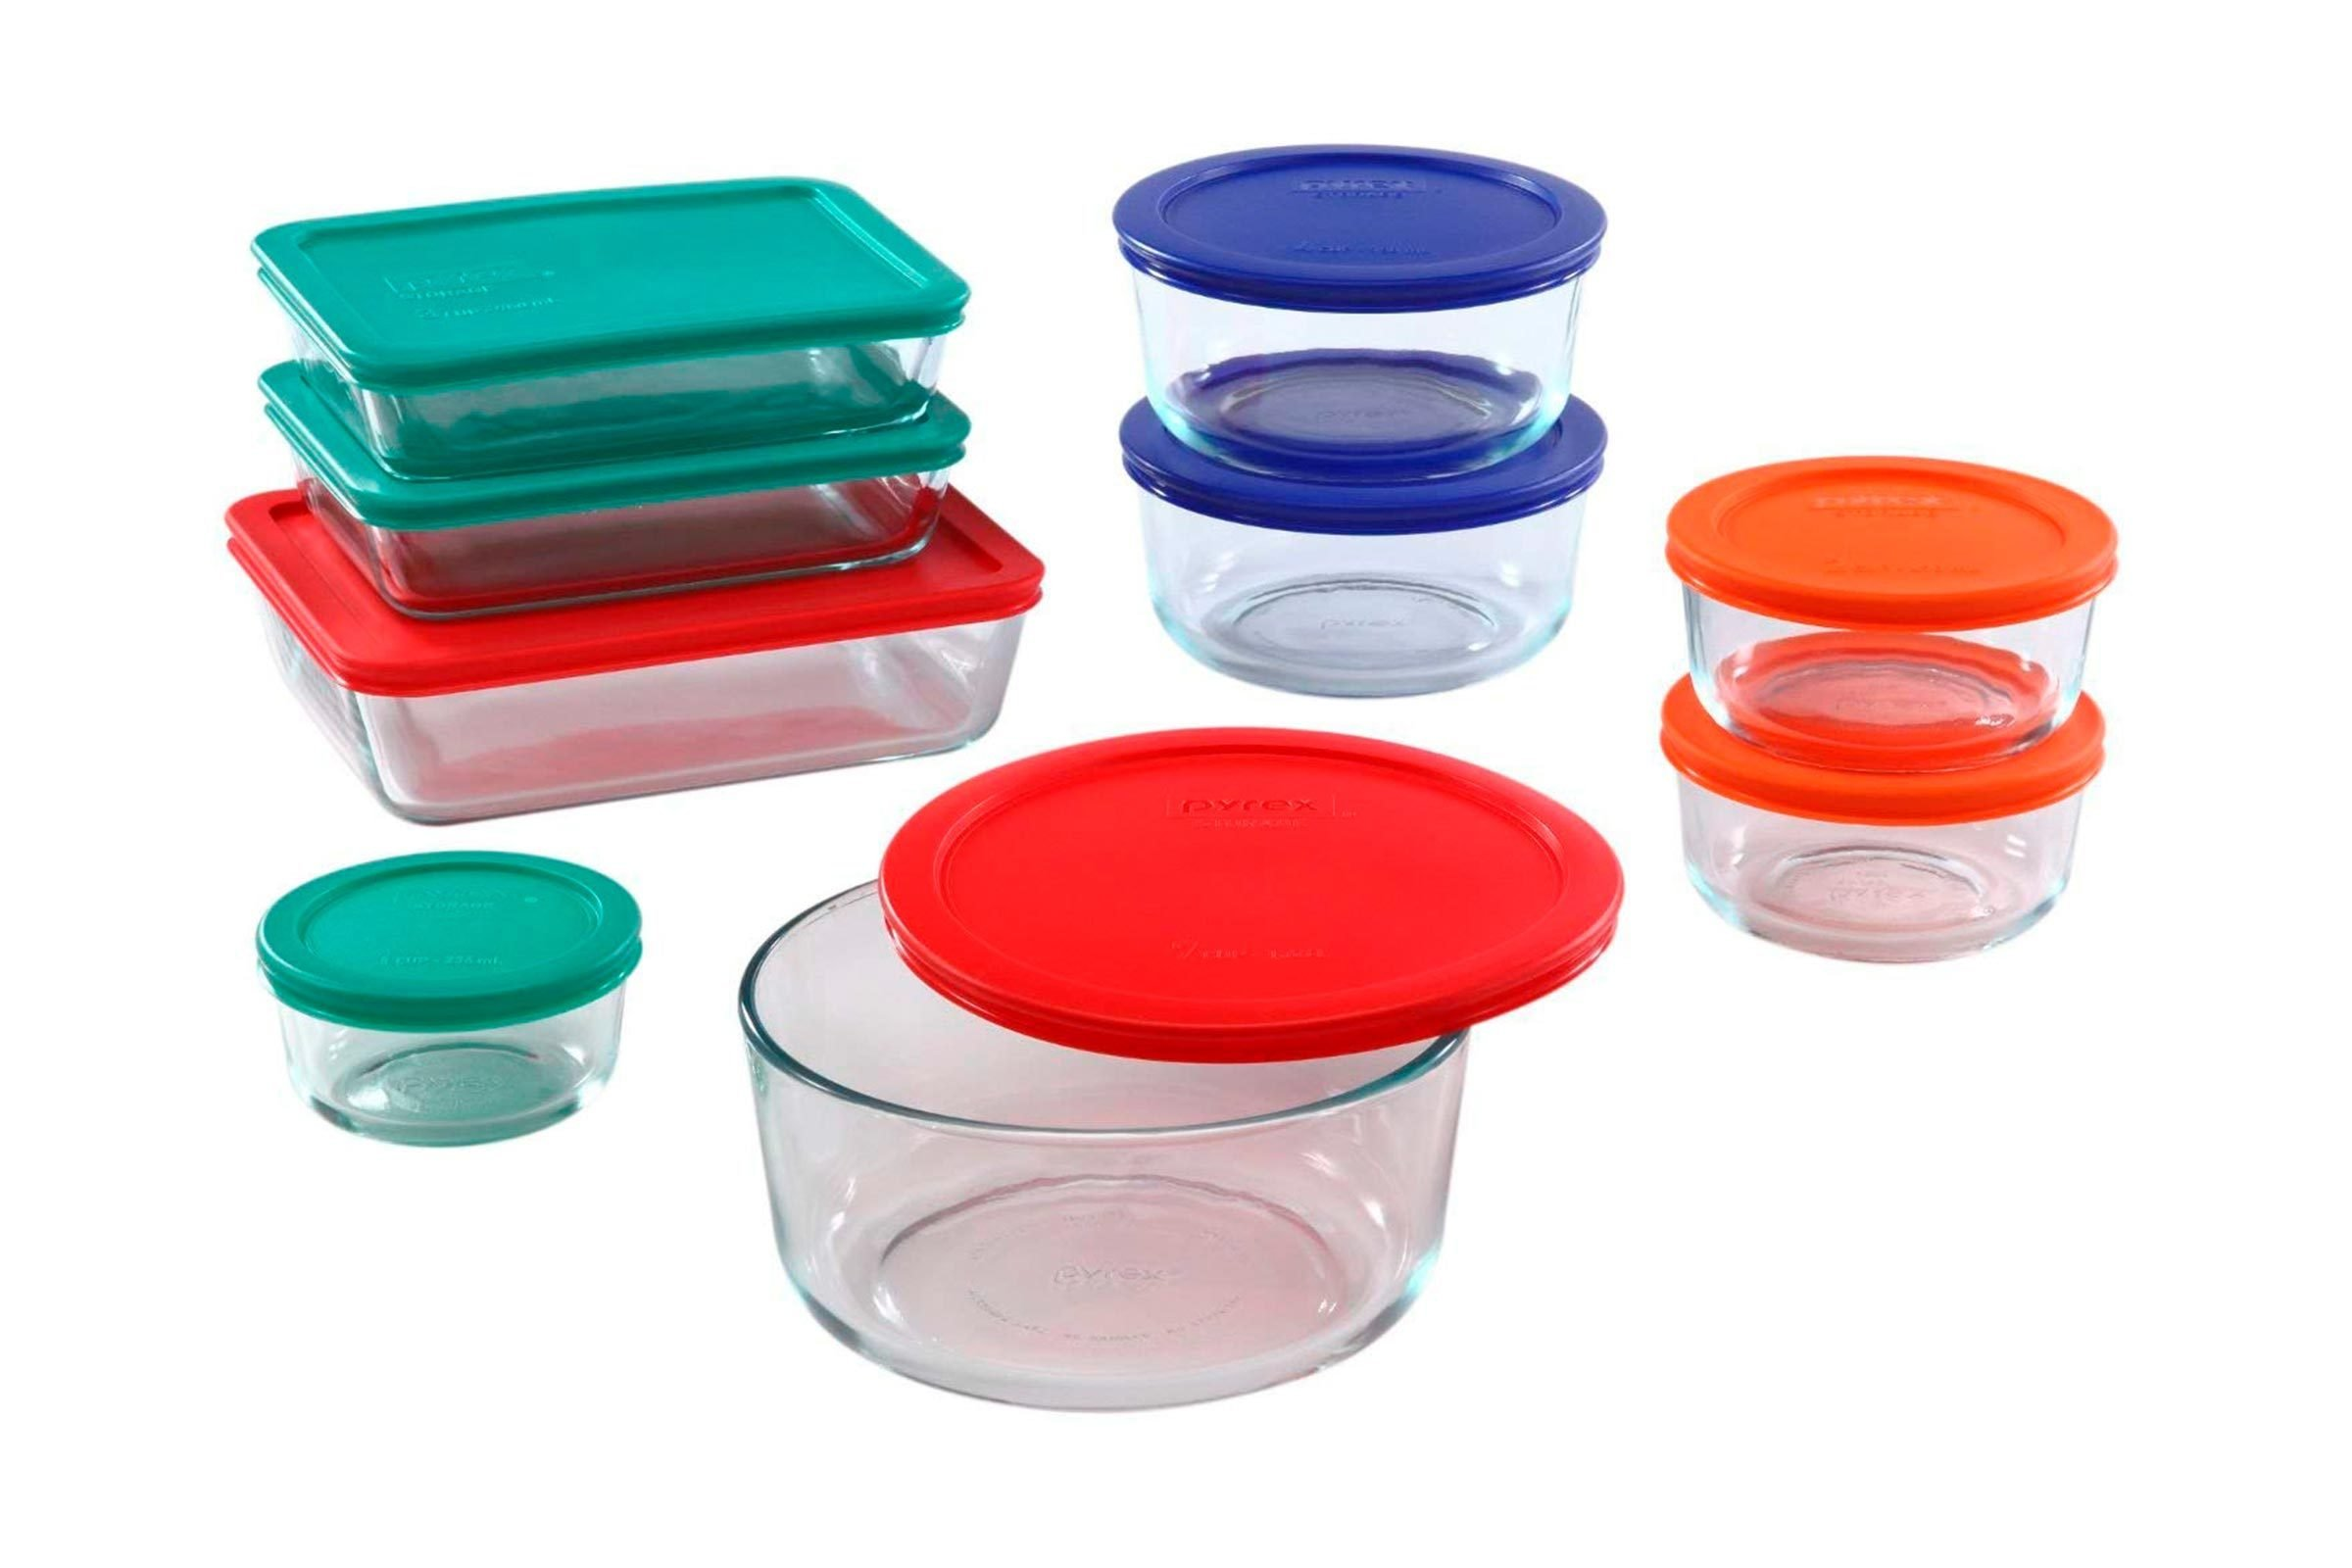 Pyrex glass storage